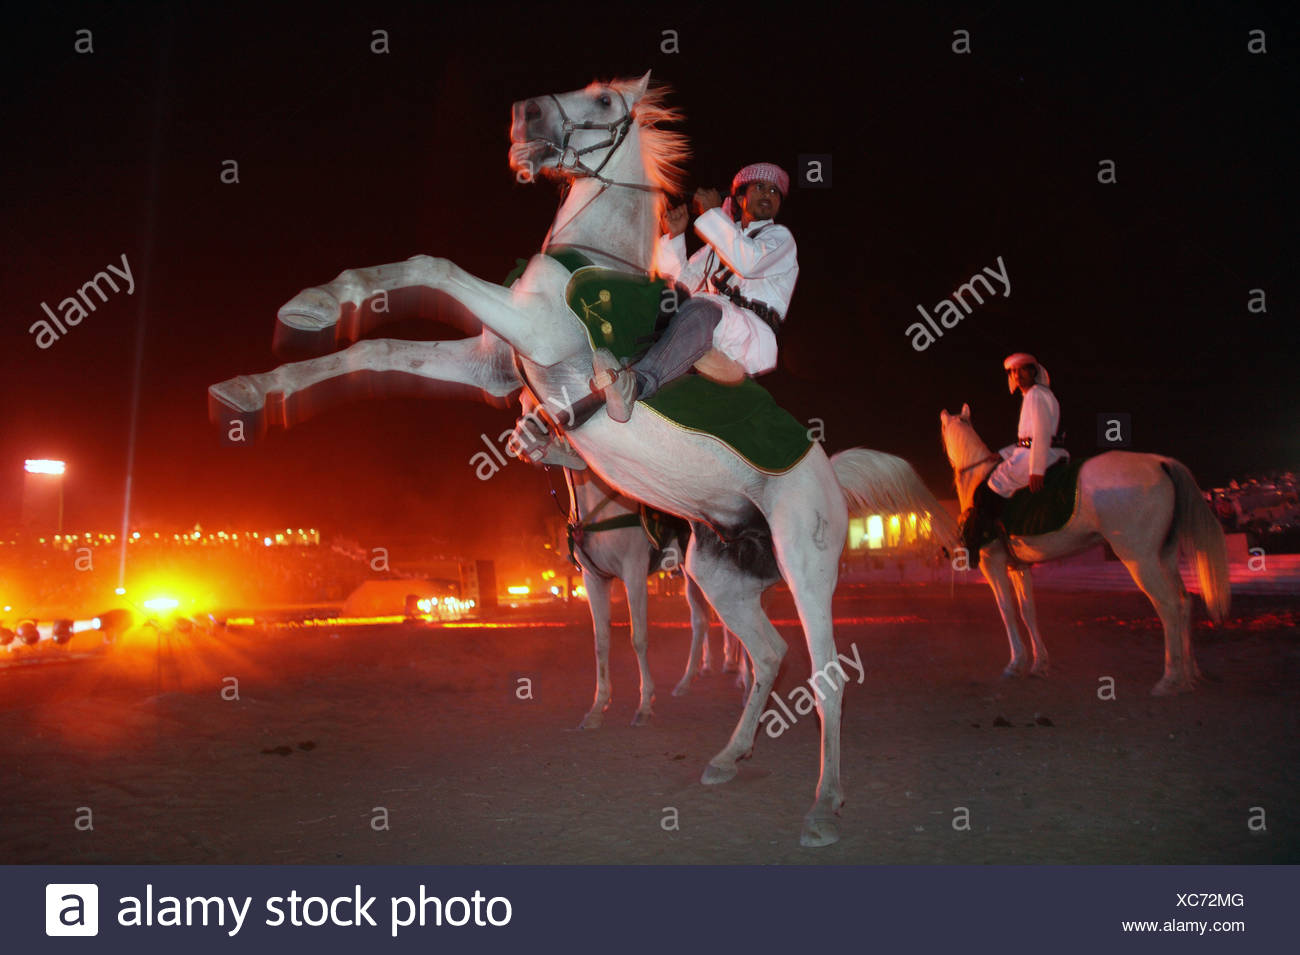 A rider in traditional Arab clothing on a rearing horse, Dubai, UAE - Stock Image